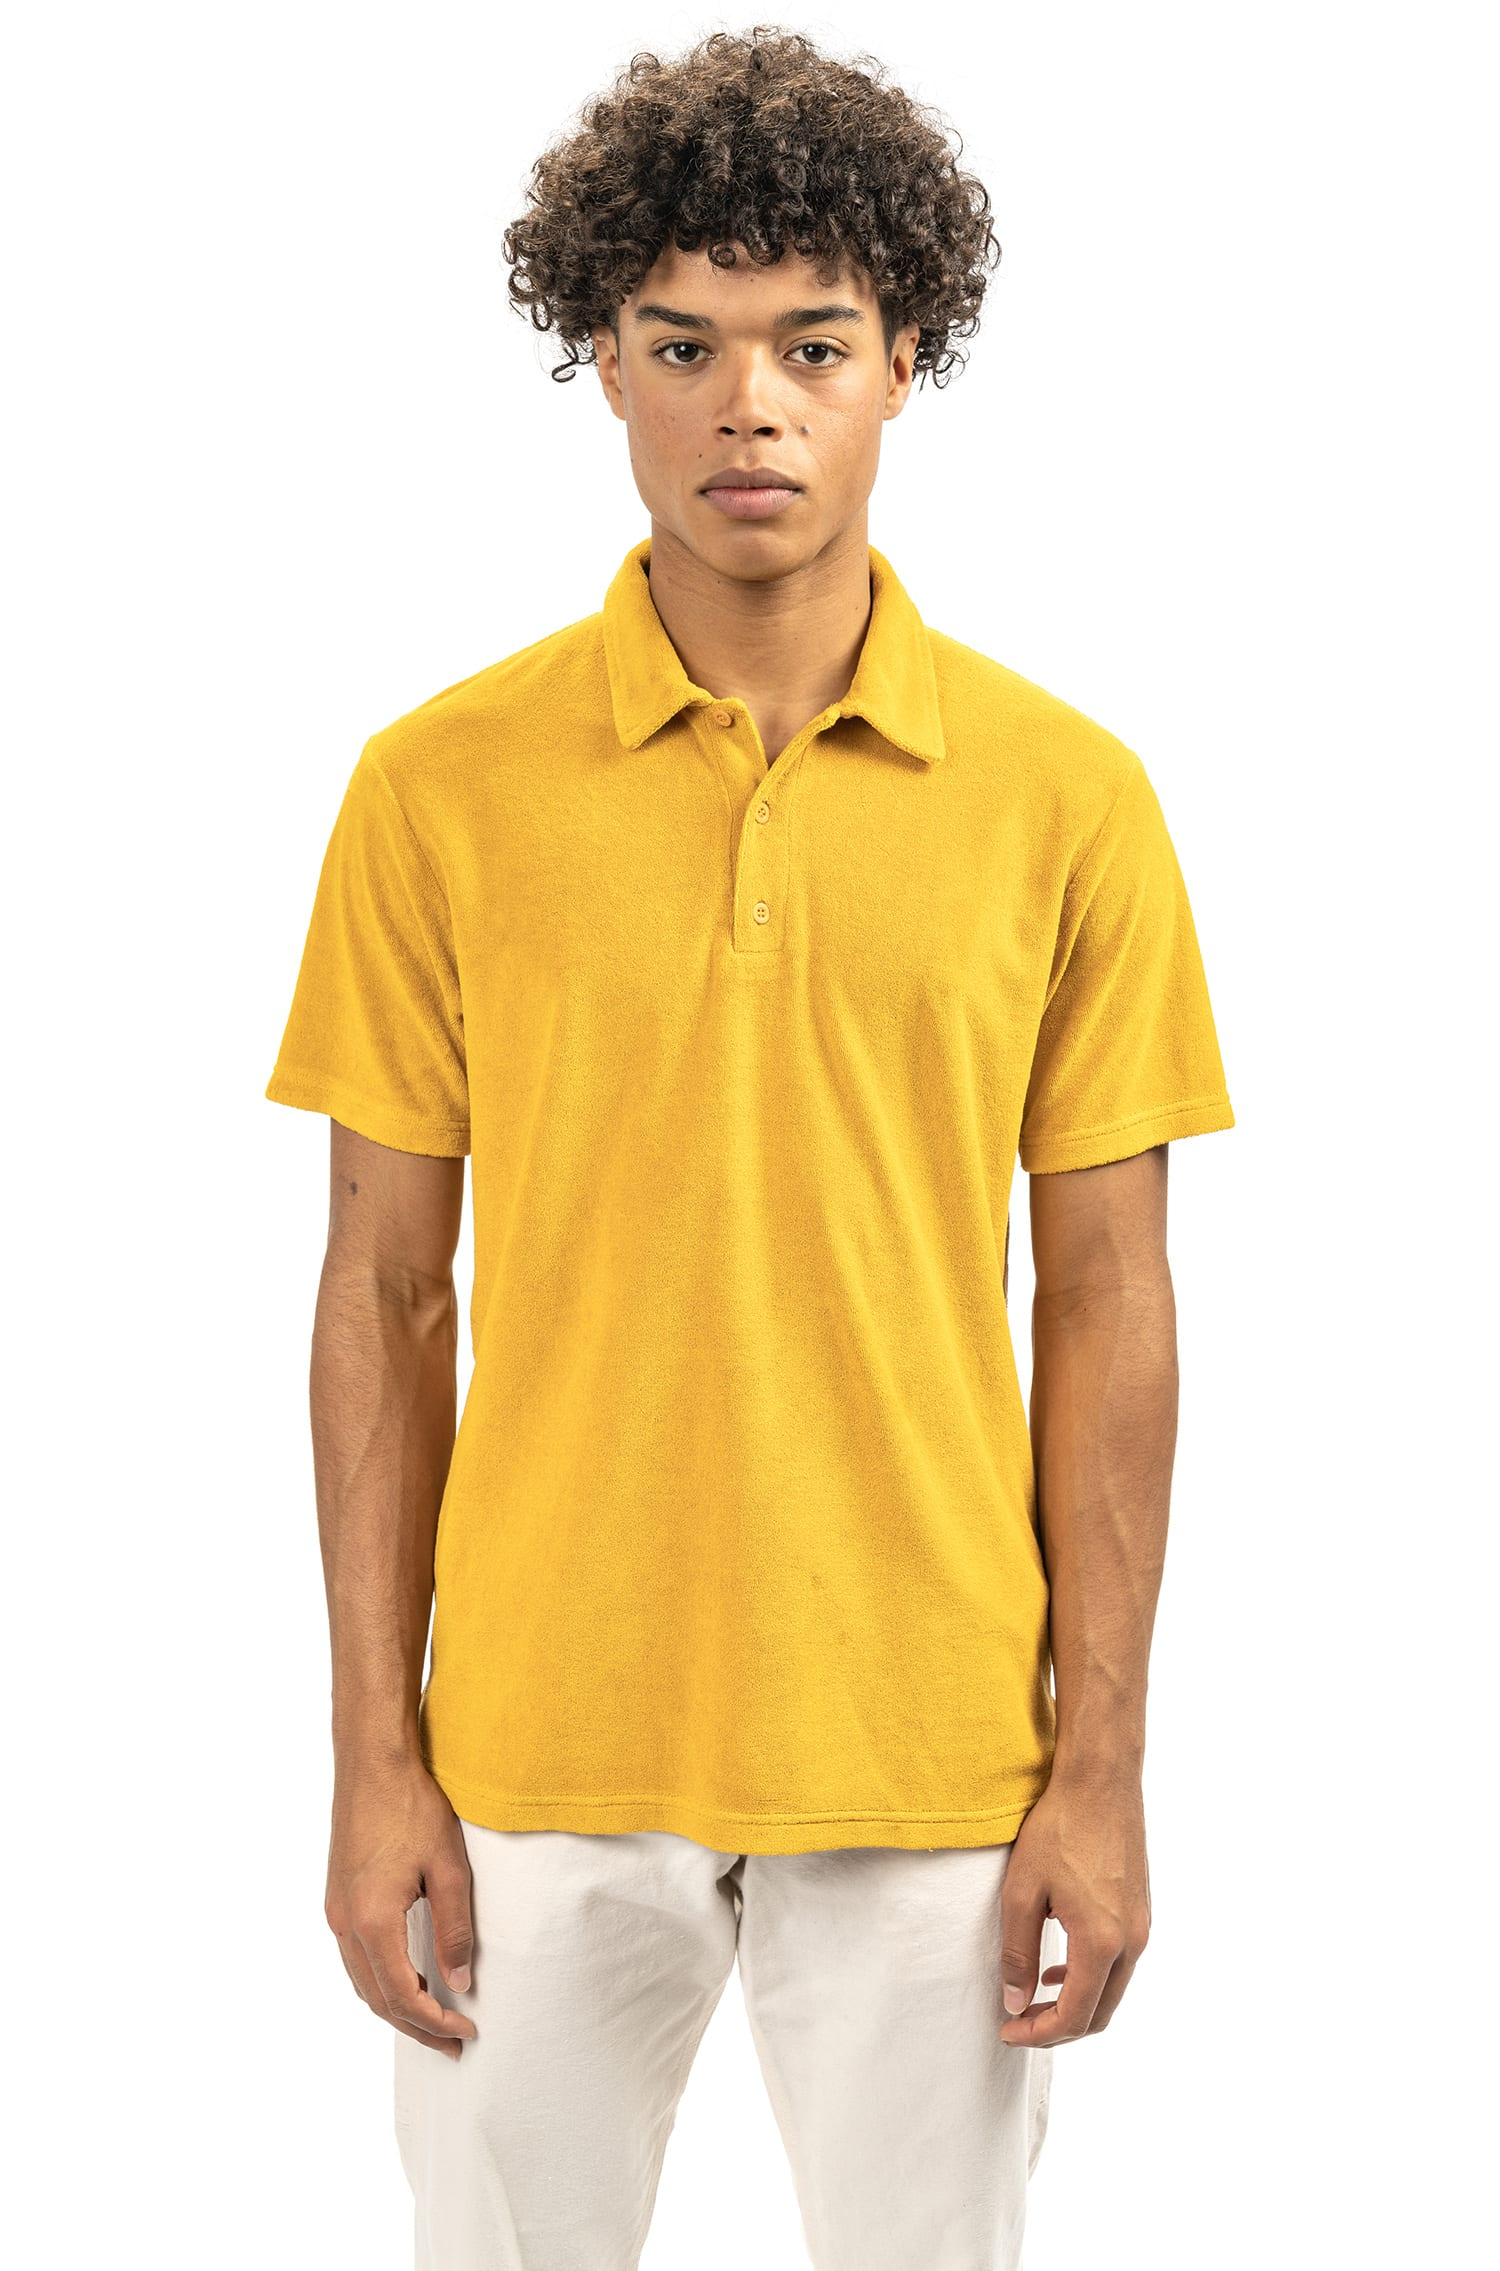 Colorful crafted Castart polos - summer polos in terry fabric - Noho Polo - Yellow